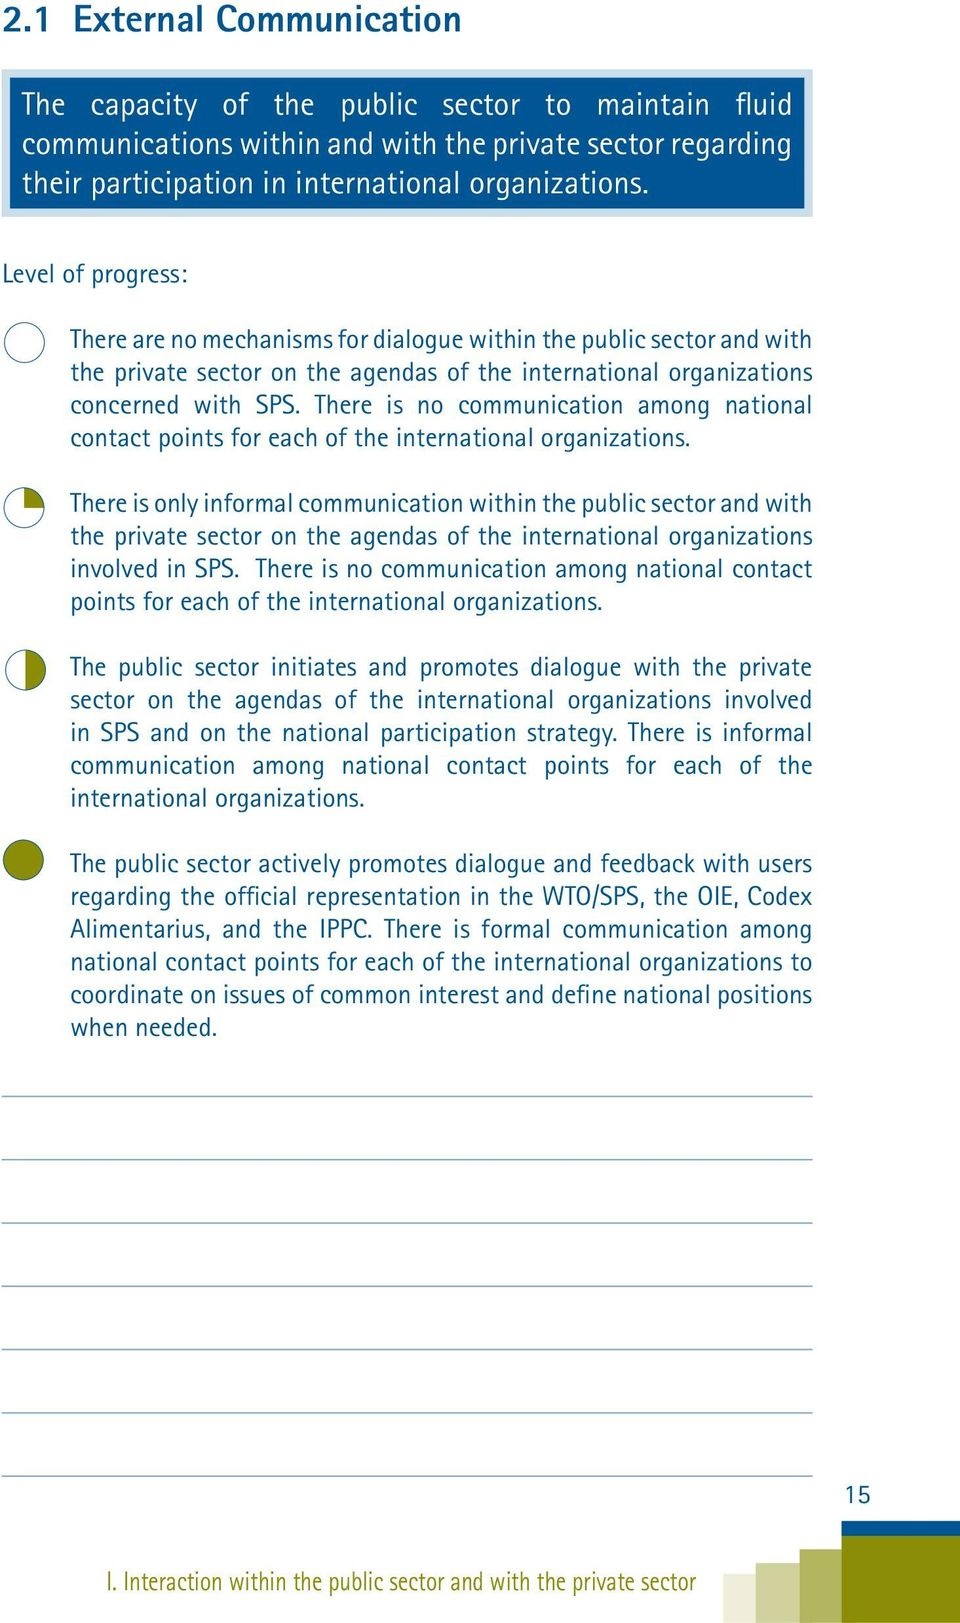 There is no communication among national contact points for each of the international organizations.